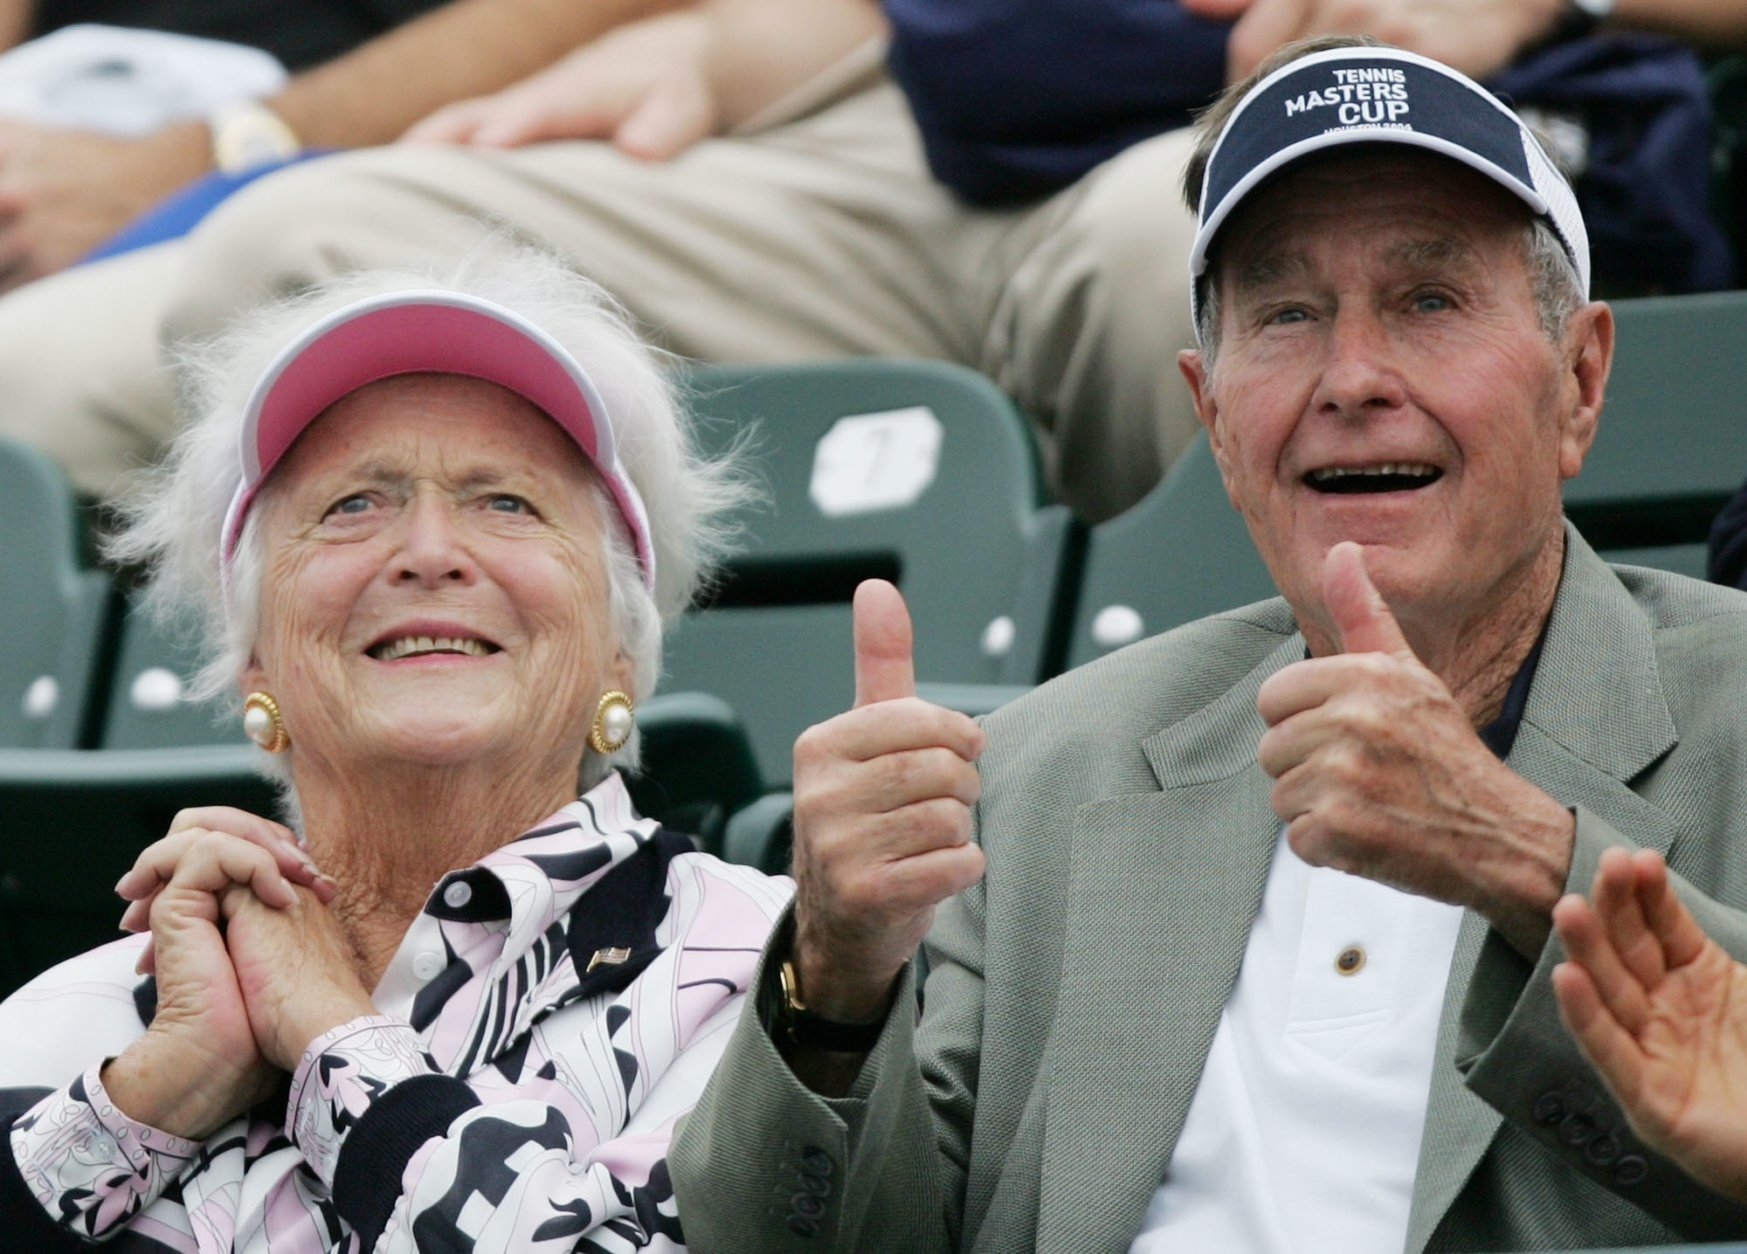 """FILE - In this Nov. 16, 2004 file photo, former President George Bush, right, gives a thumbs-up while he and his wife, Barbara, left, attend the Tennis Masters Cup tournament in Houston. With her husband still at her side, Barbara Bush has decided to decline further medical treatment for health problems and focus instead on """"comfort care"""" at their home in Houston. Family spokesman Jim McGrath disclosed Barbara Bush's decision Sunday, April 15, 2018. (AP Photo/David J. Phillip, File)"""